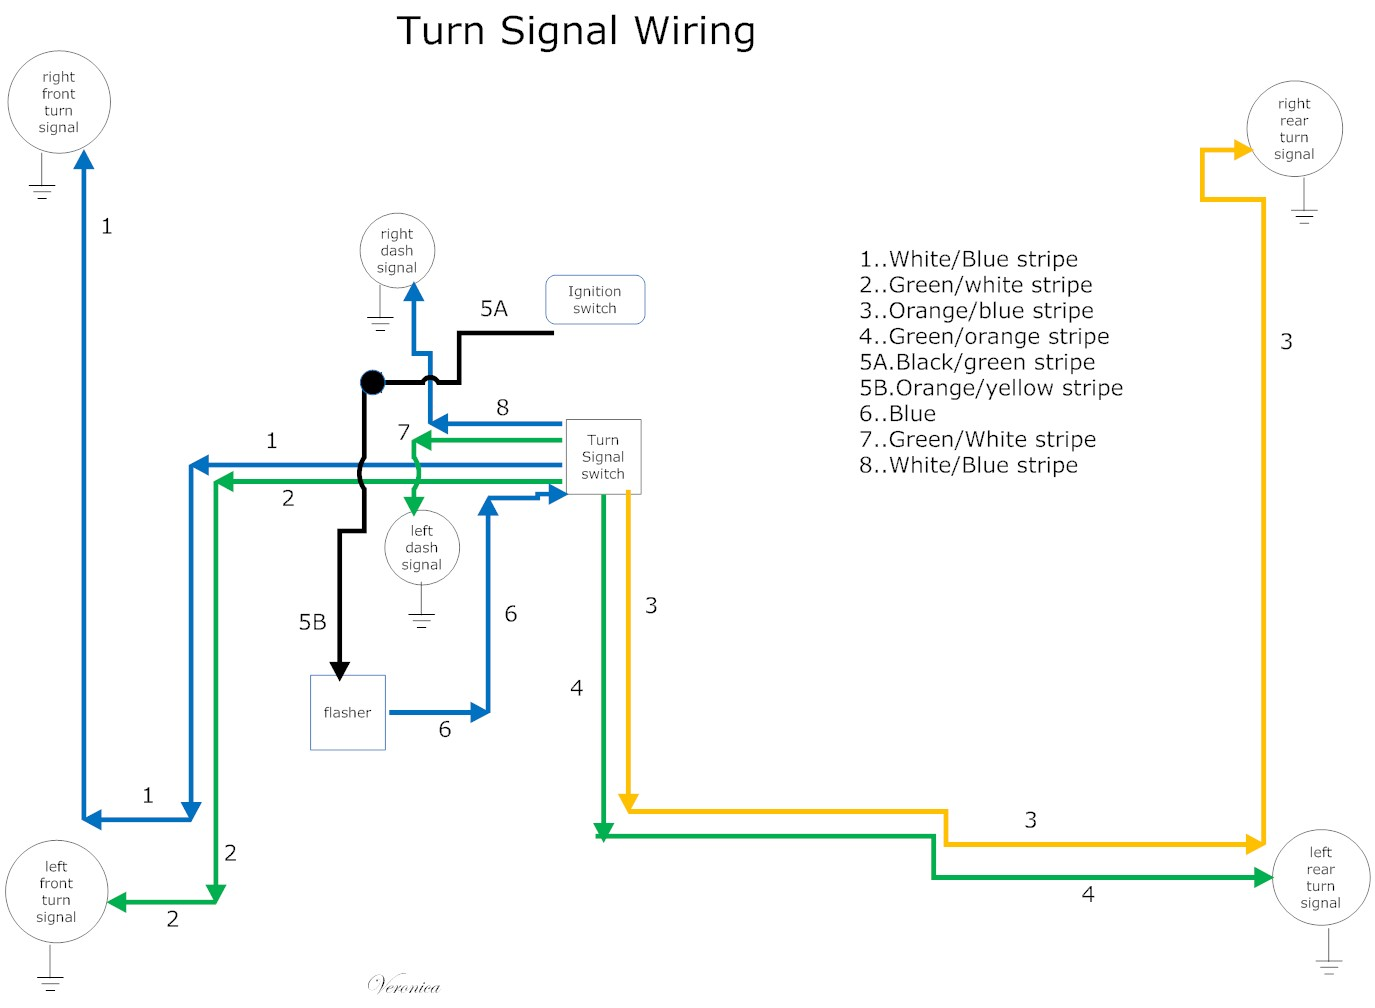 Turn+signal+Wiring turn signal wiring diagram turn signal wiring diagram 05 victory  at nearapp.co